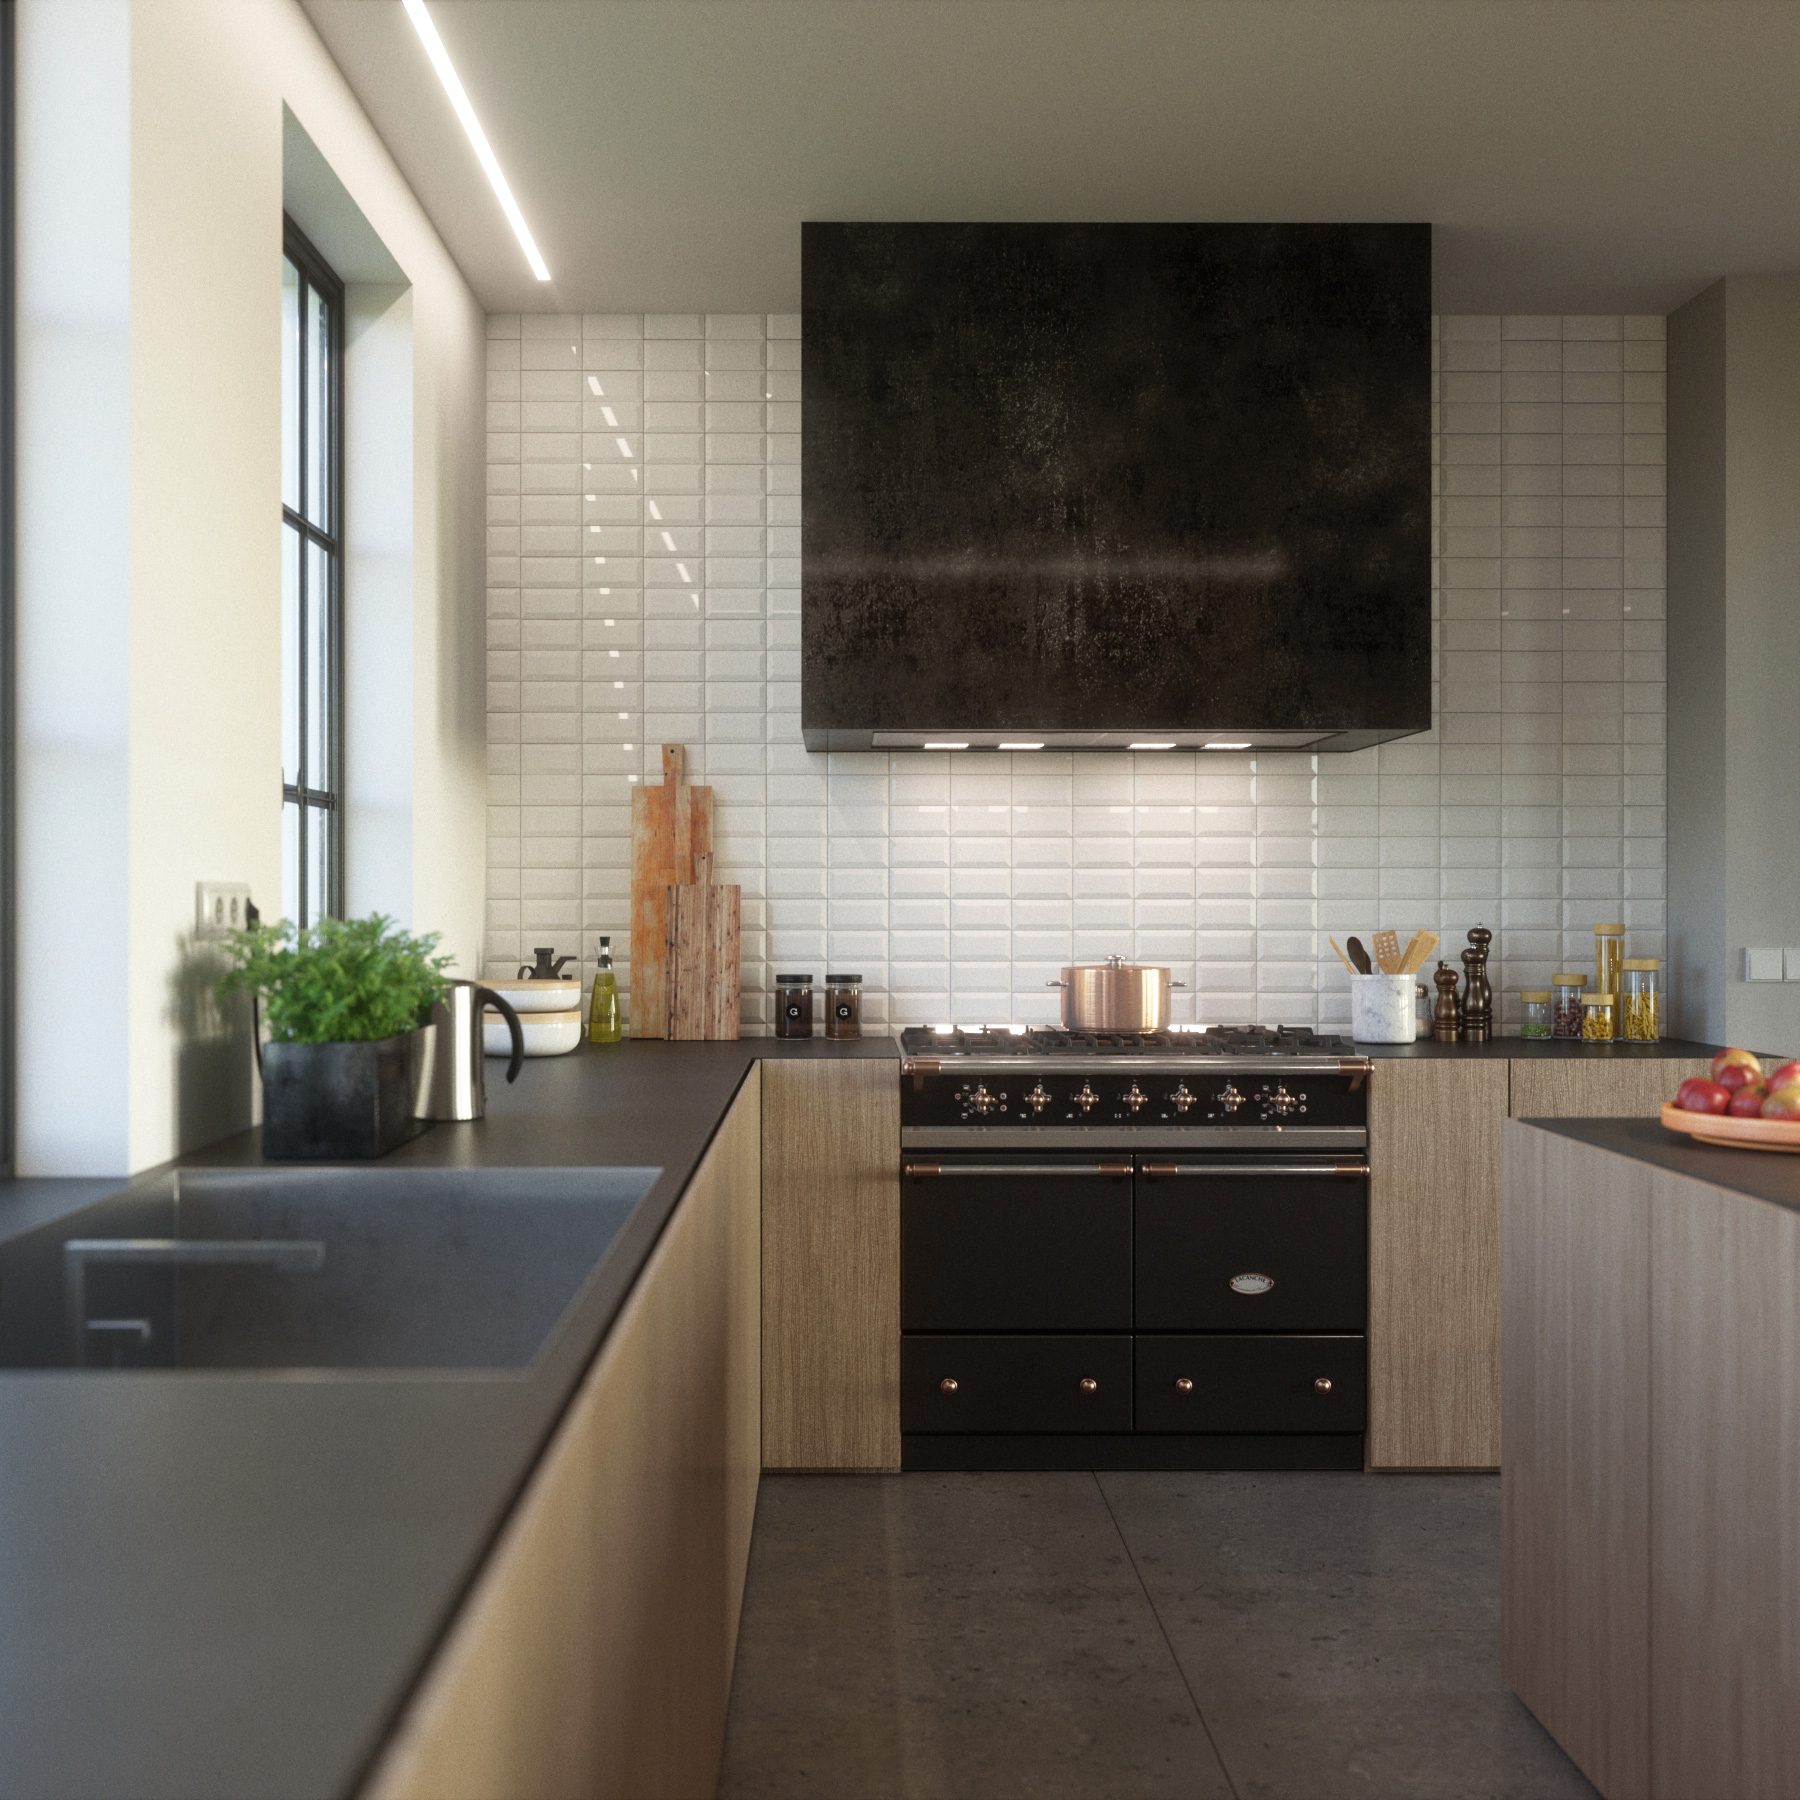 Our Ideal Kitchen Todeschini Cucine